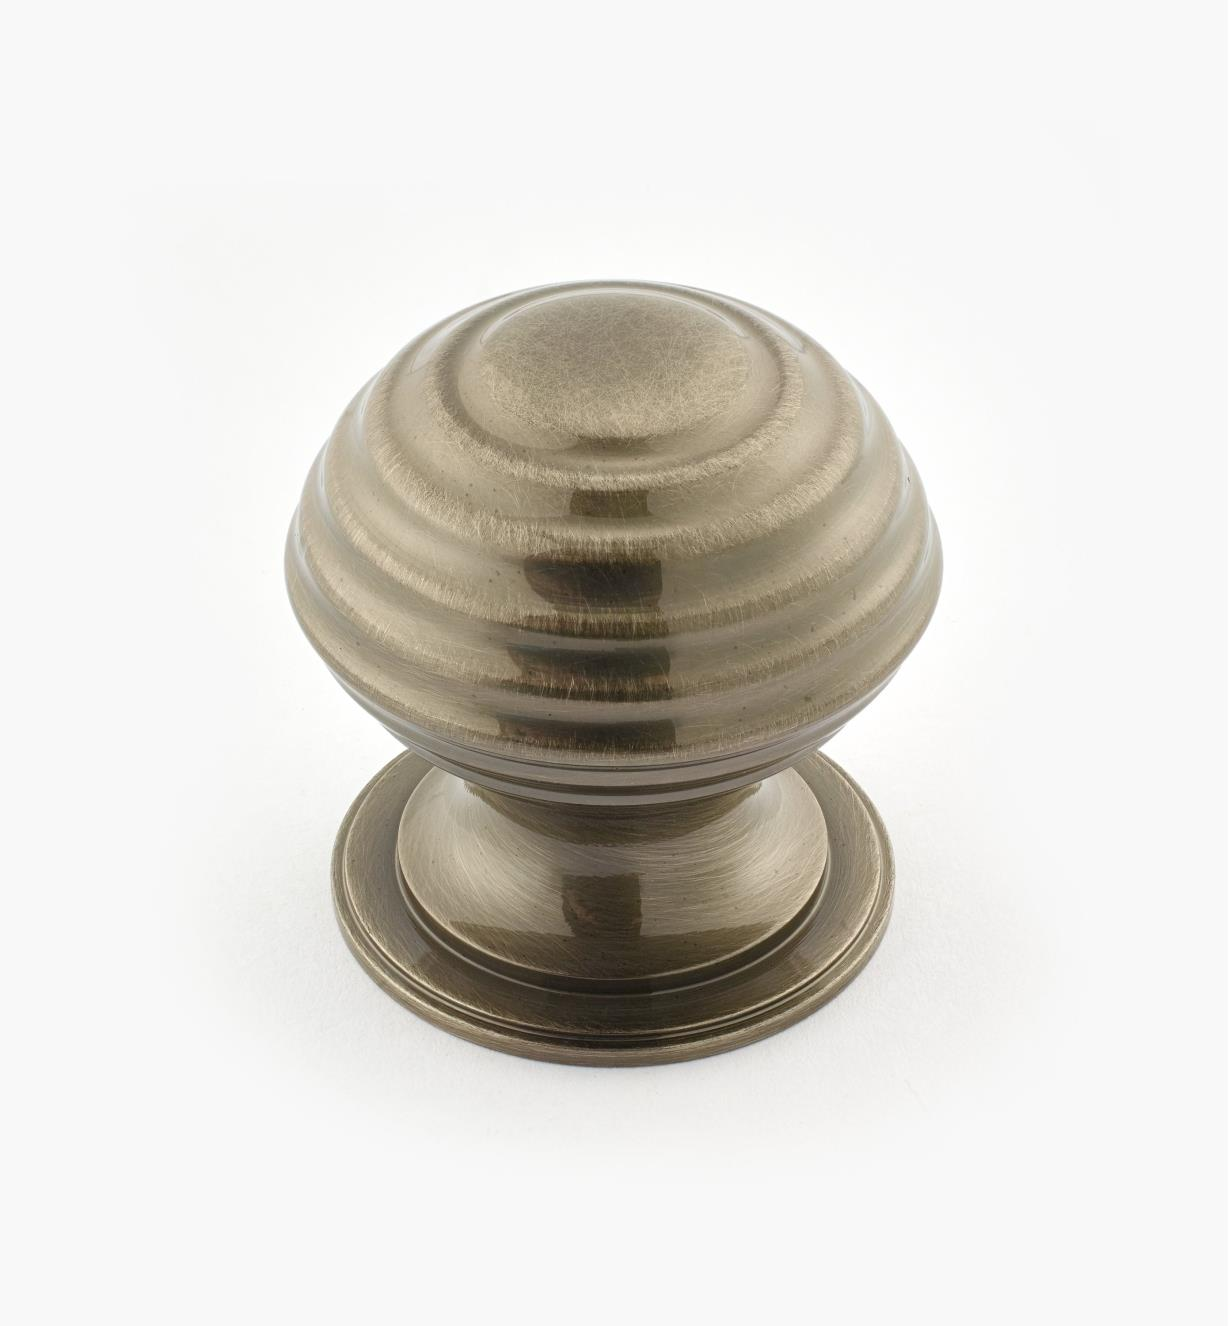 "02W3316 - Antique Nickel Suite - 1 1/2"" x 1 1/2"" Turned Brass Ridged Knob"